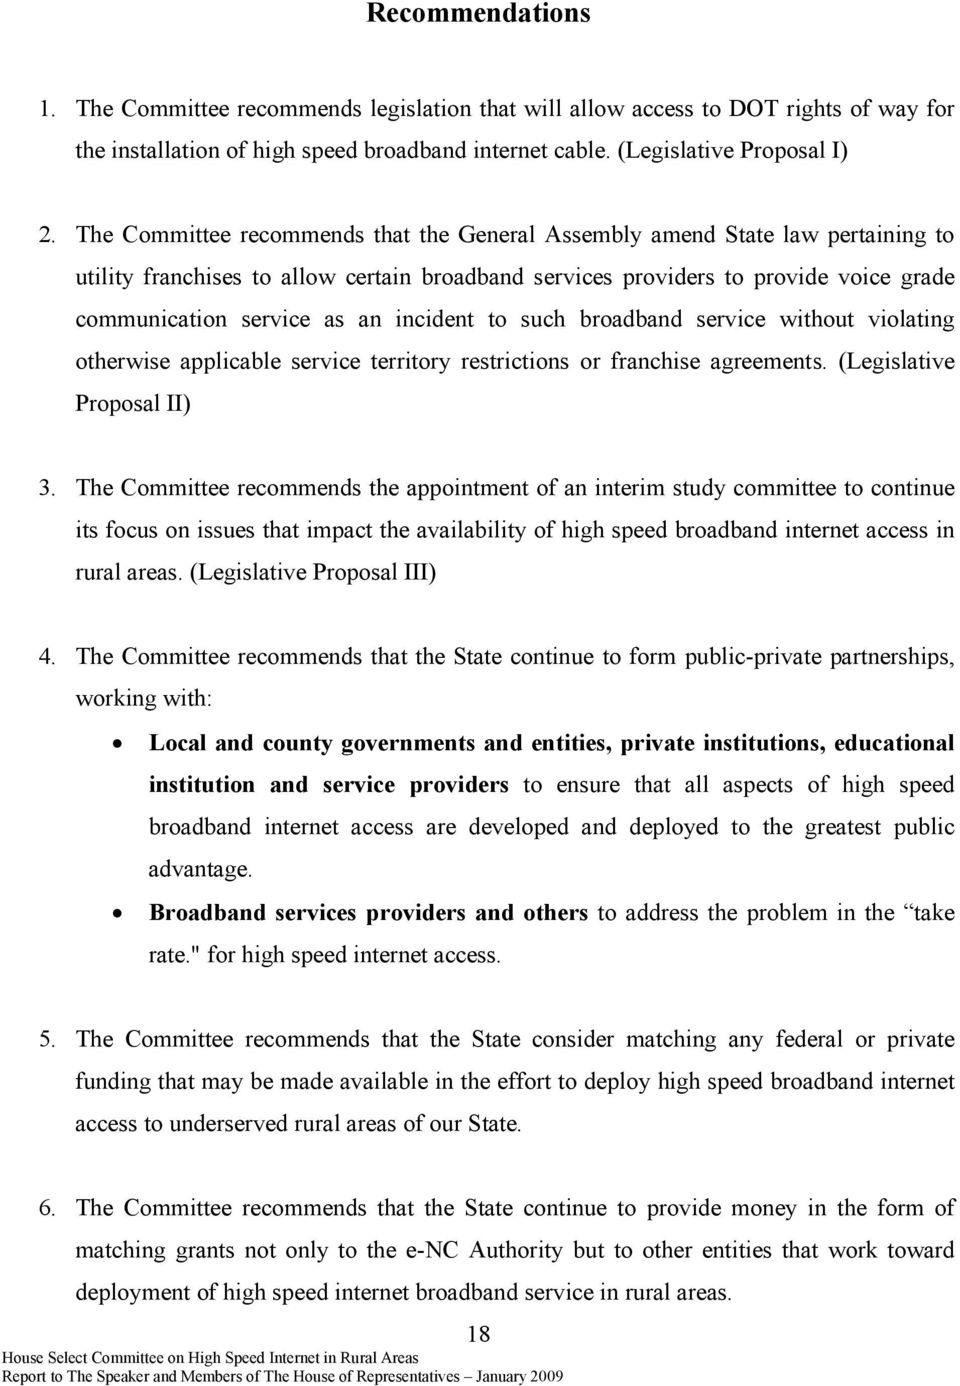 incident to such broadband service without violating otherwise applicable service territory restrictions or franchise agreements. (Legislative Proposal II) 3.